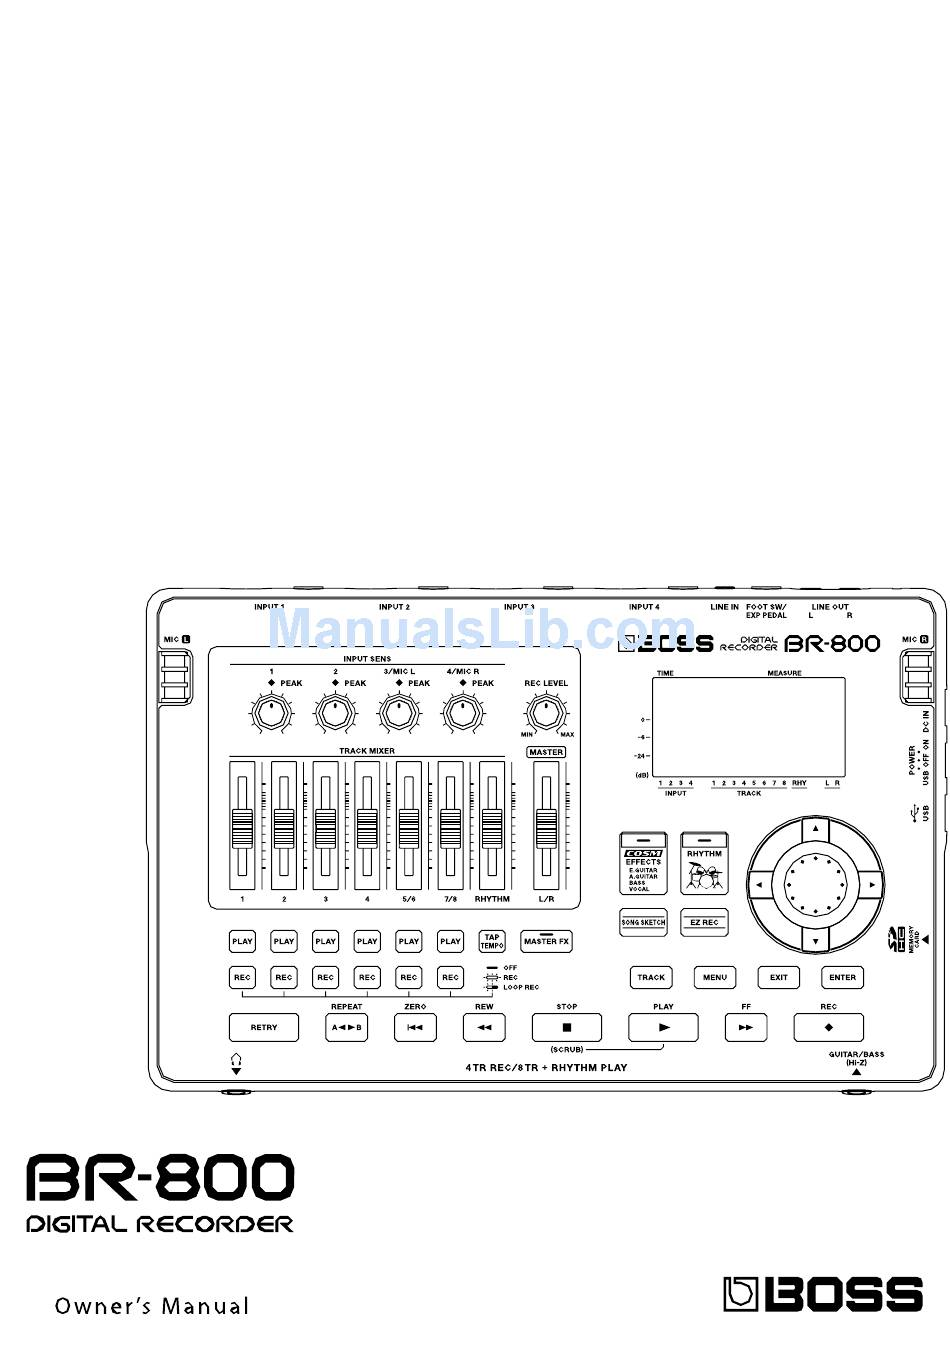 BOSS AUDIO SYSTEMS BR-800 OWNER'S MANUAL Pdf Download